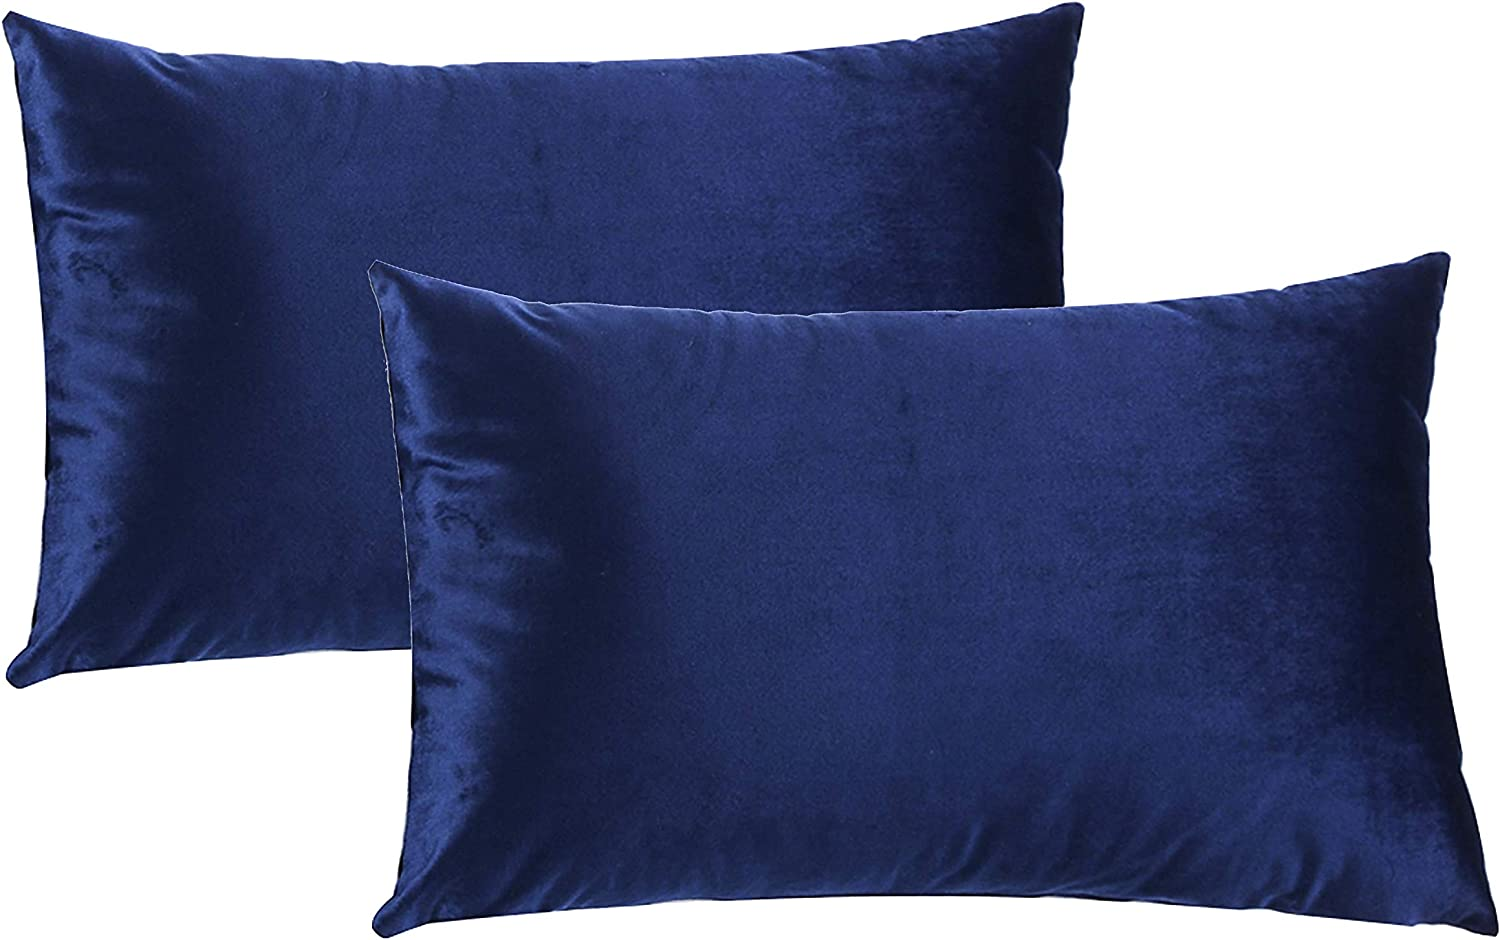 HPUK Pack of 2 Velvet Throw Pillow Cover Cozy Solid Pillowcase Decorative Cushion Cover for Couch Sofa Bedroom Office car, 12x20, Navy